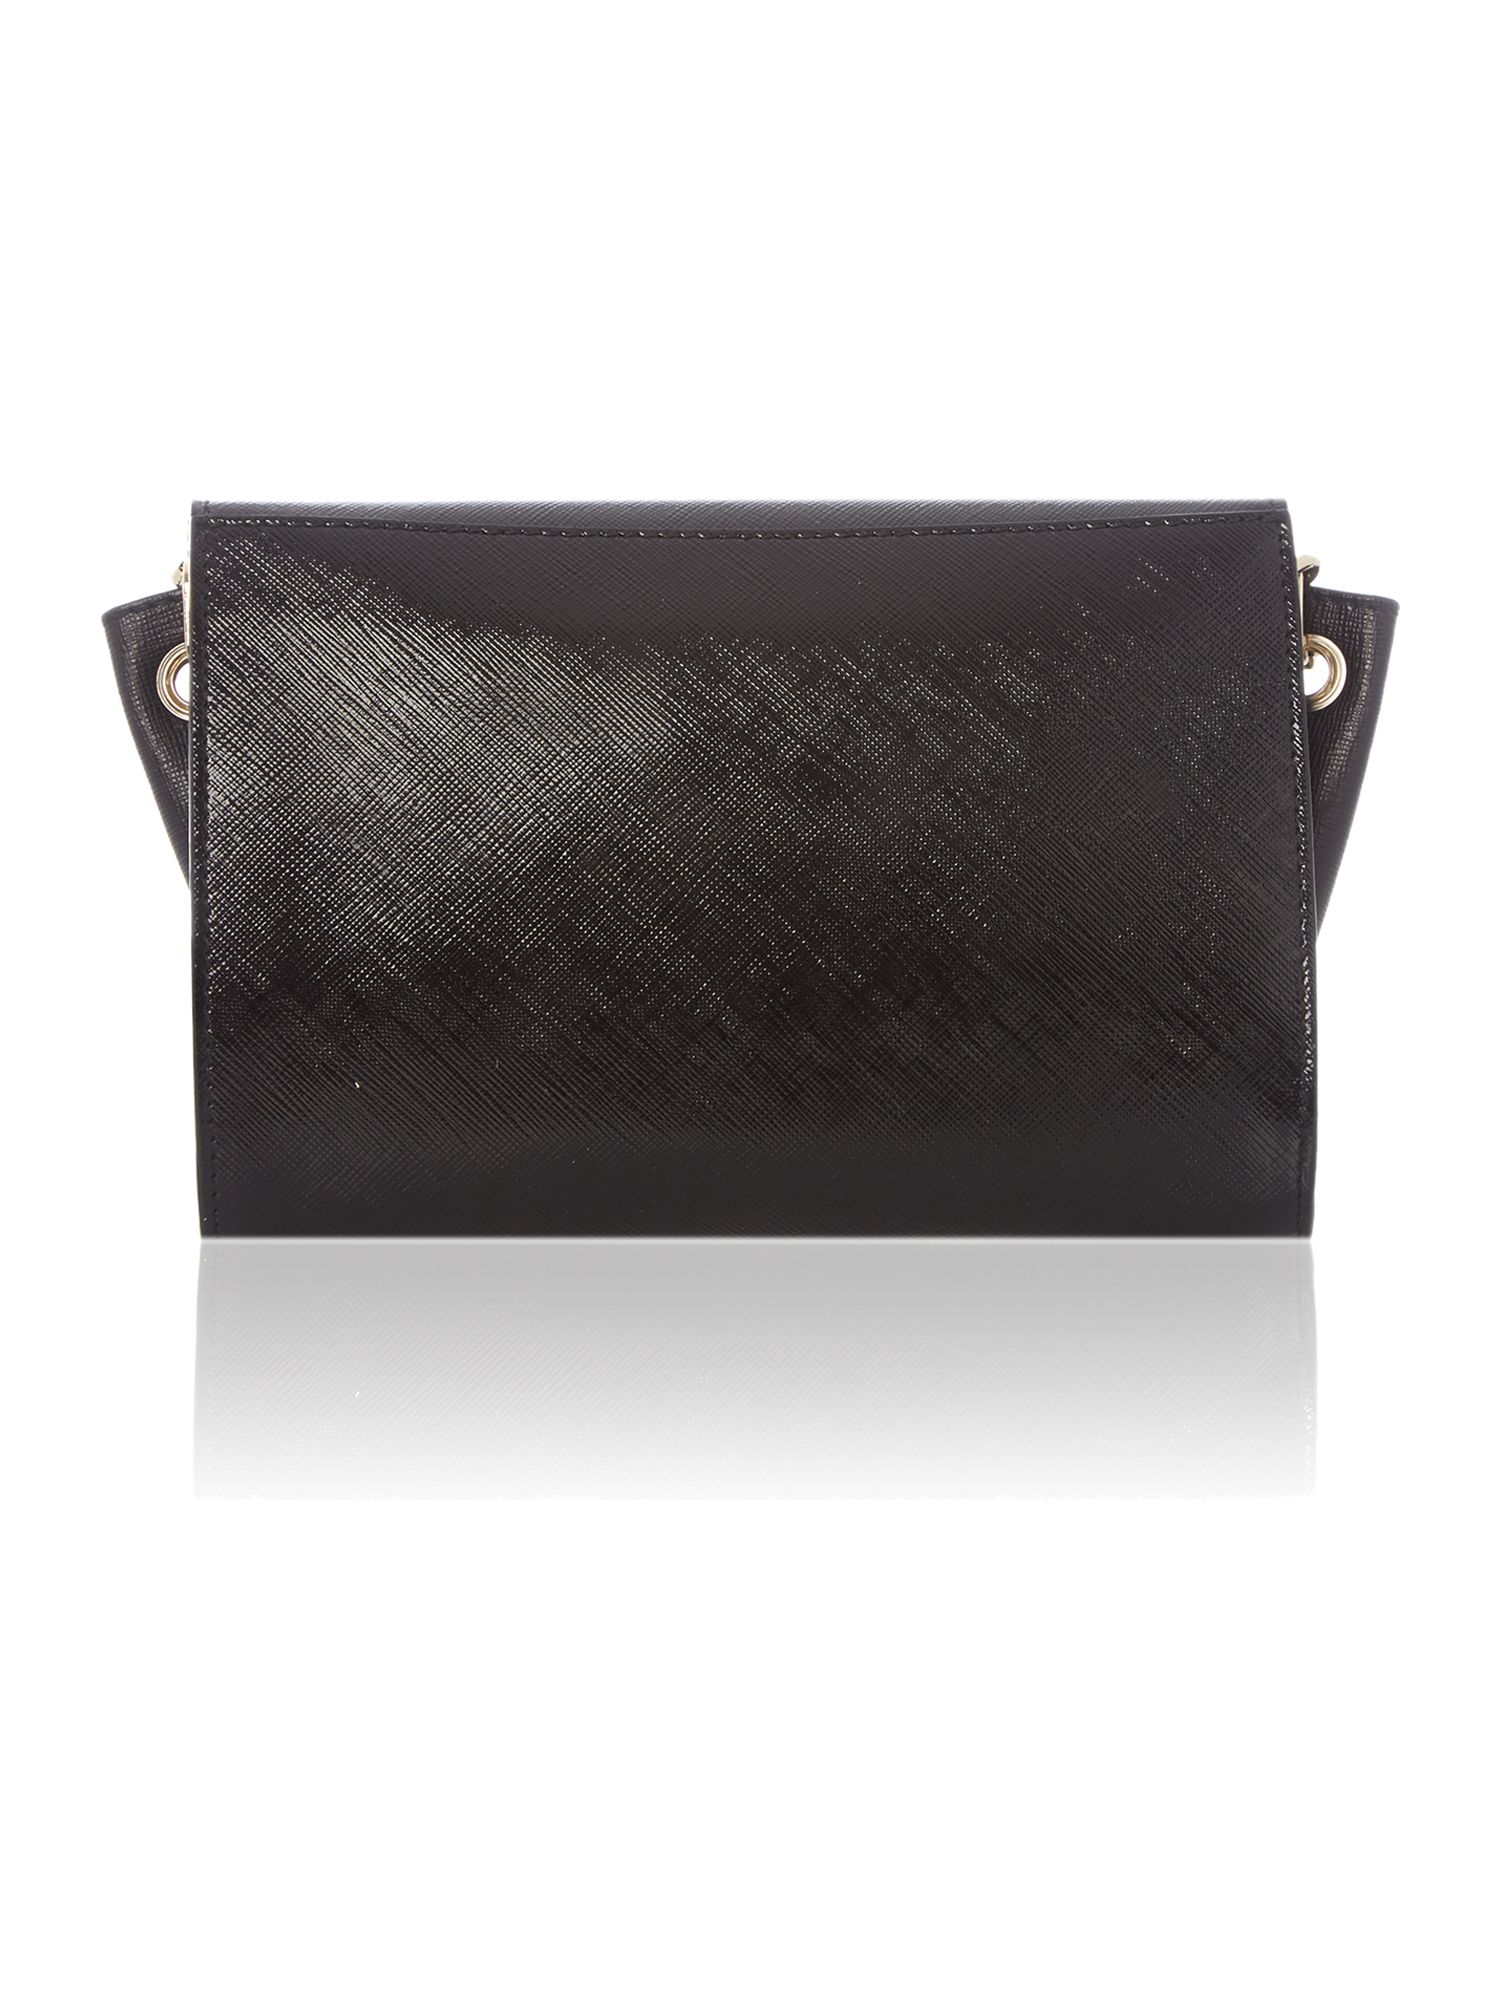 Zizi black small shoulder bag